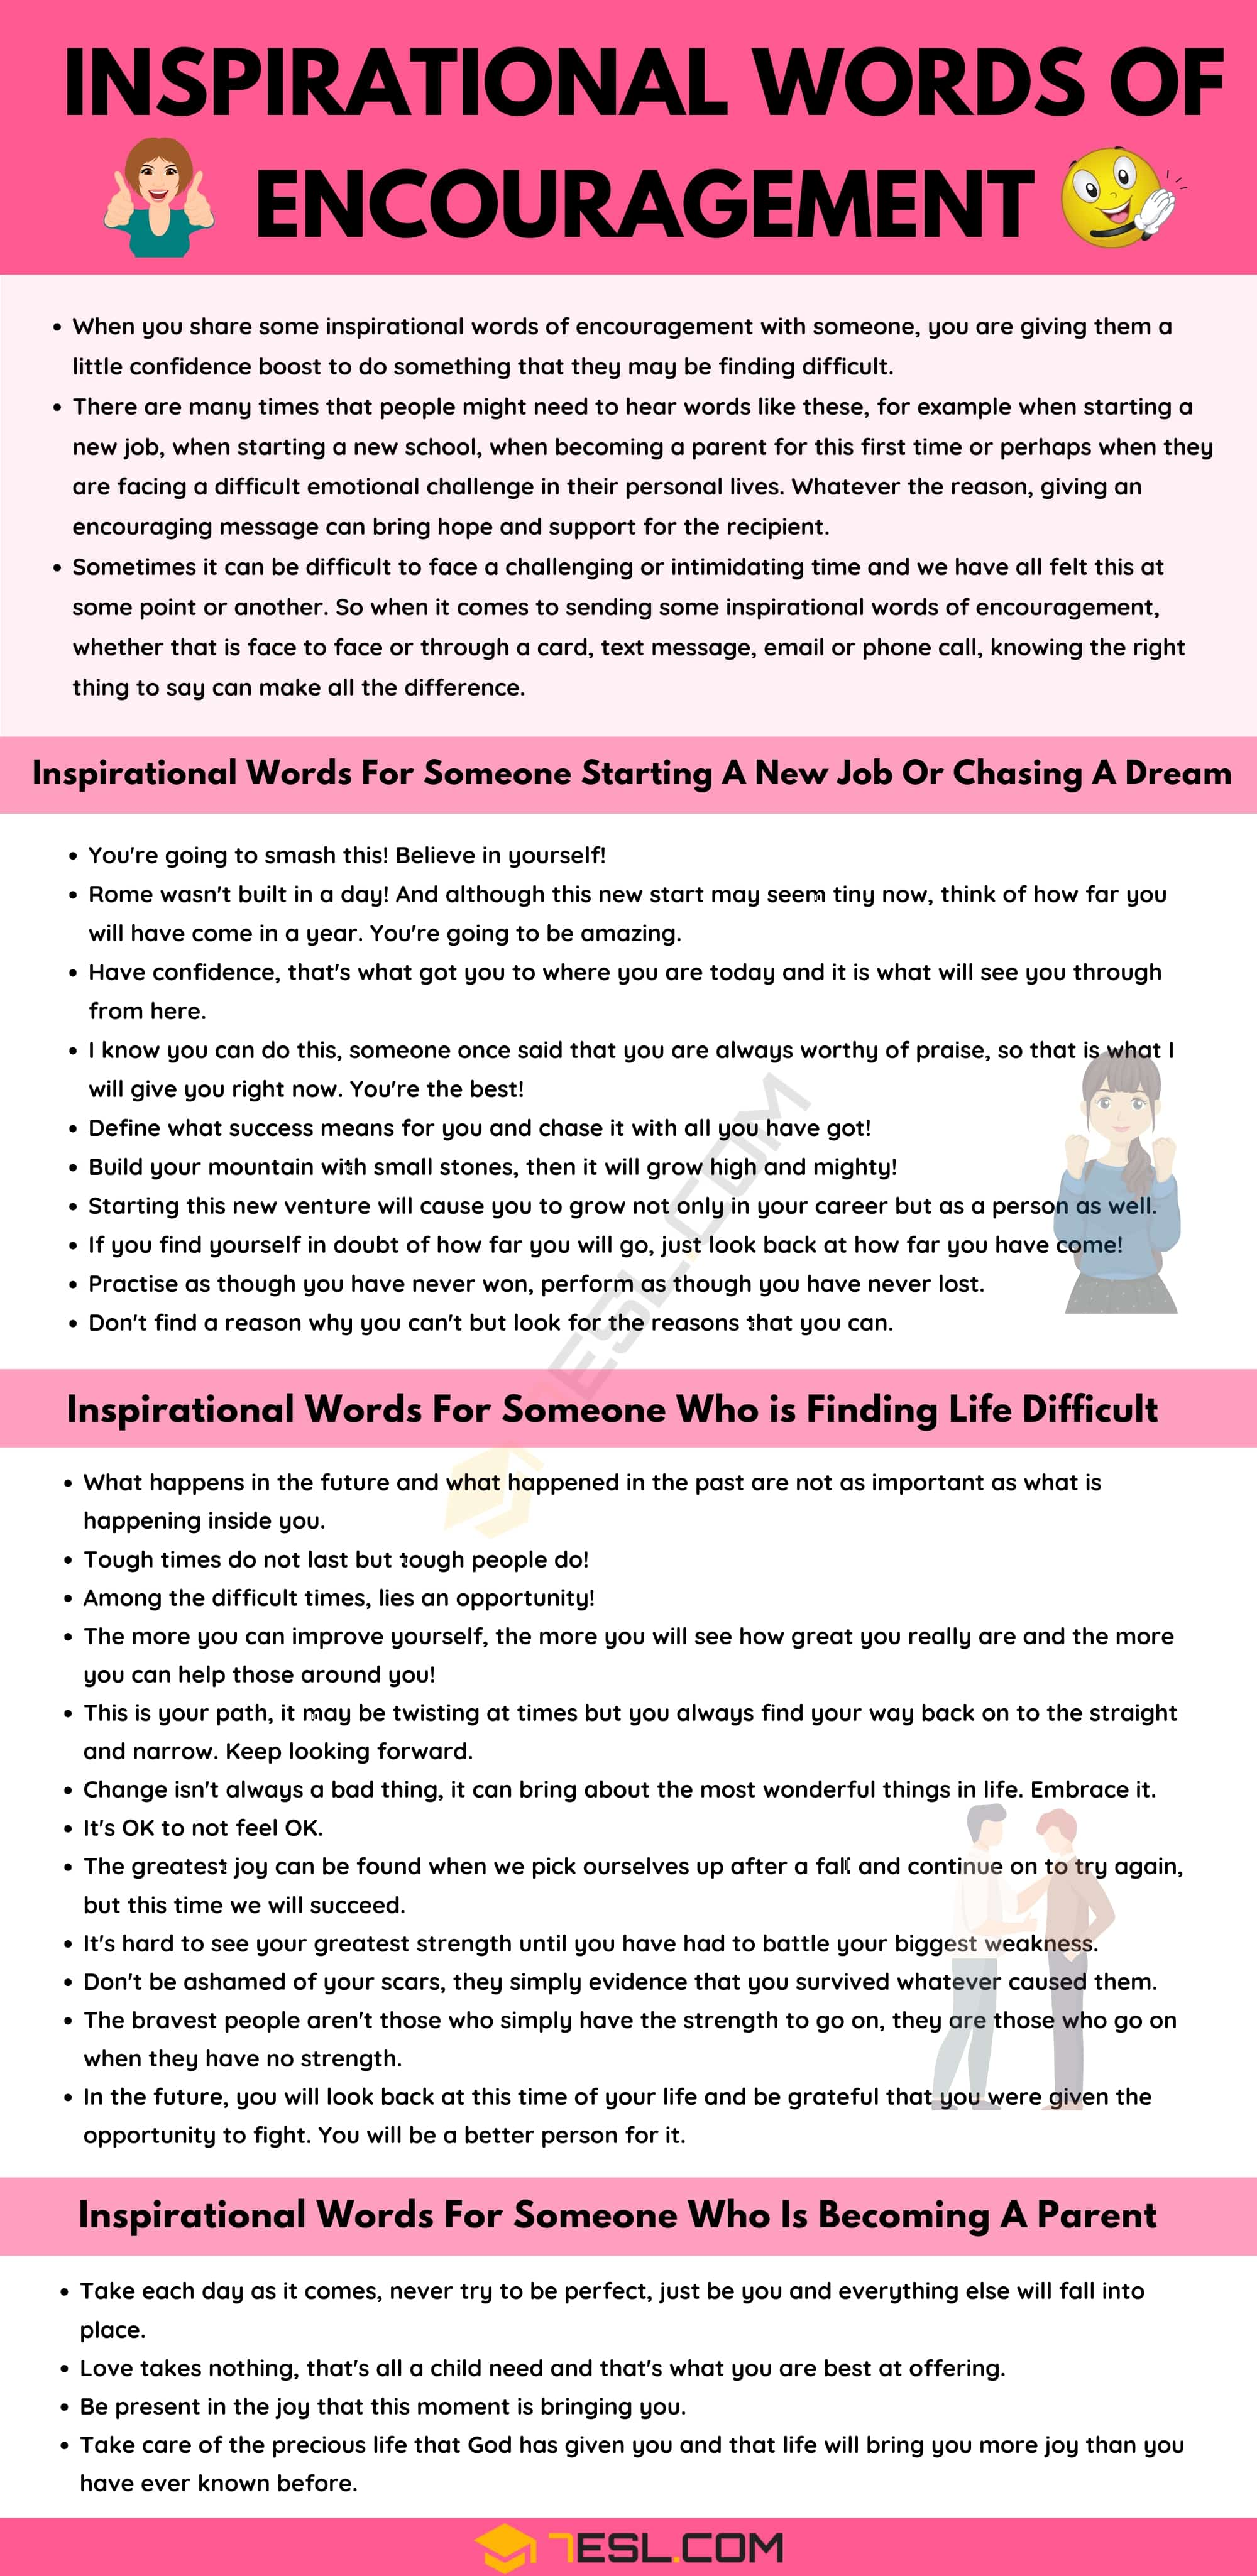 Top 30 Inspirational Words Of Encouragement to Motivate Your Friends and Others